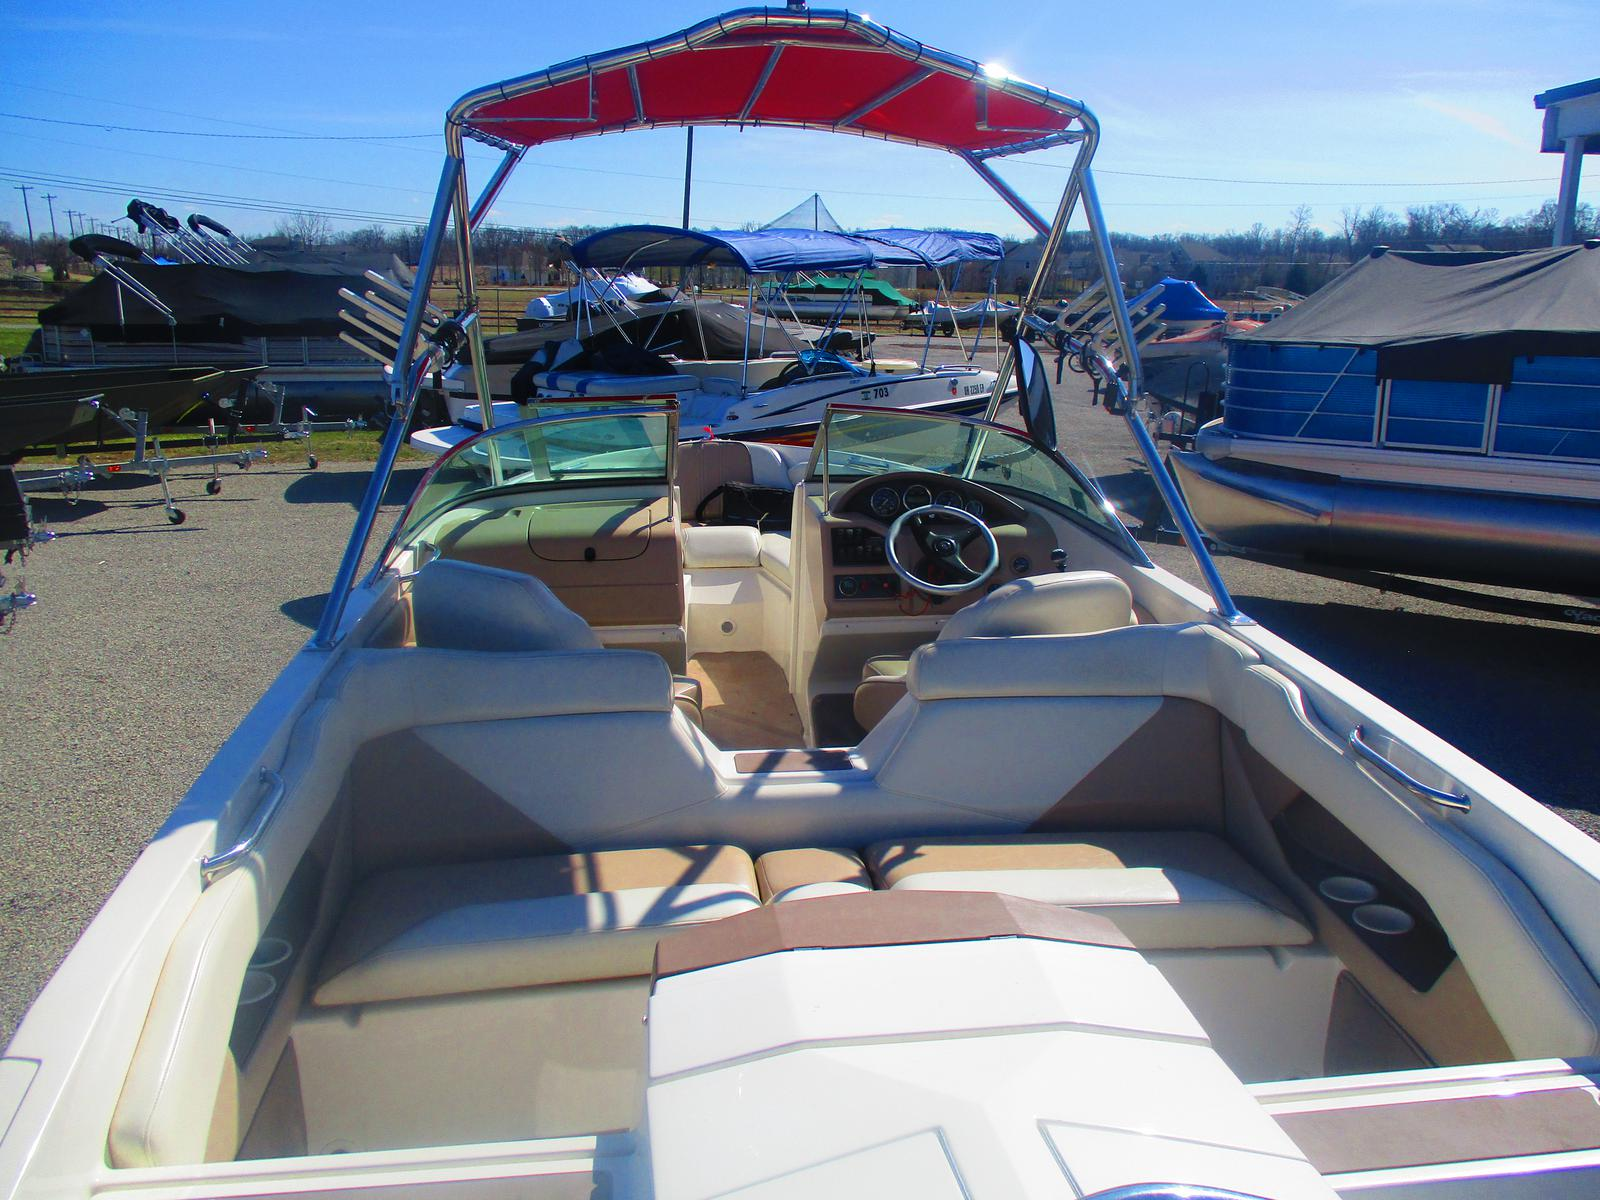 2003 Regal boat for sale, model of the boat is SESSION 22XI & Image # 3 of 6